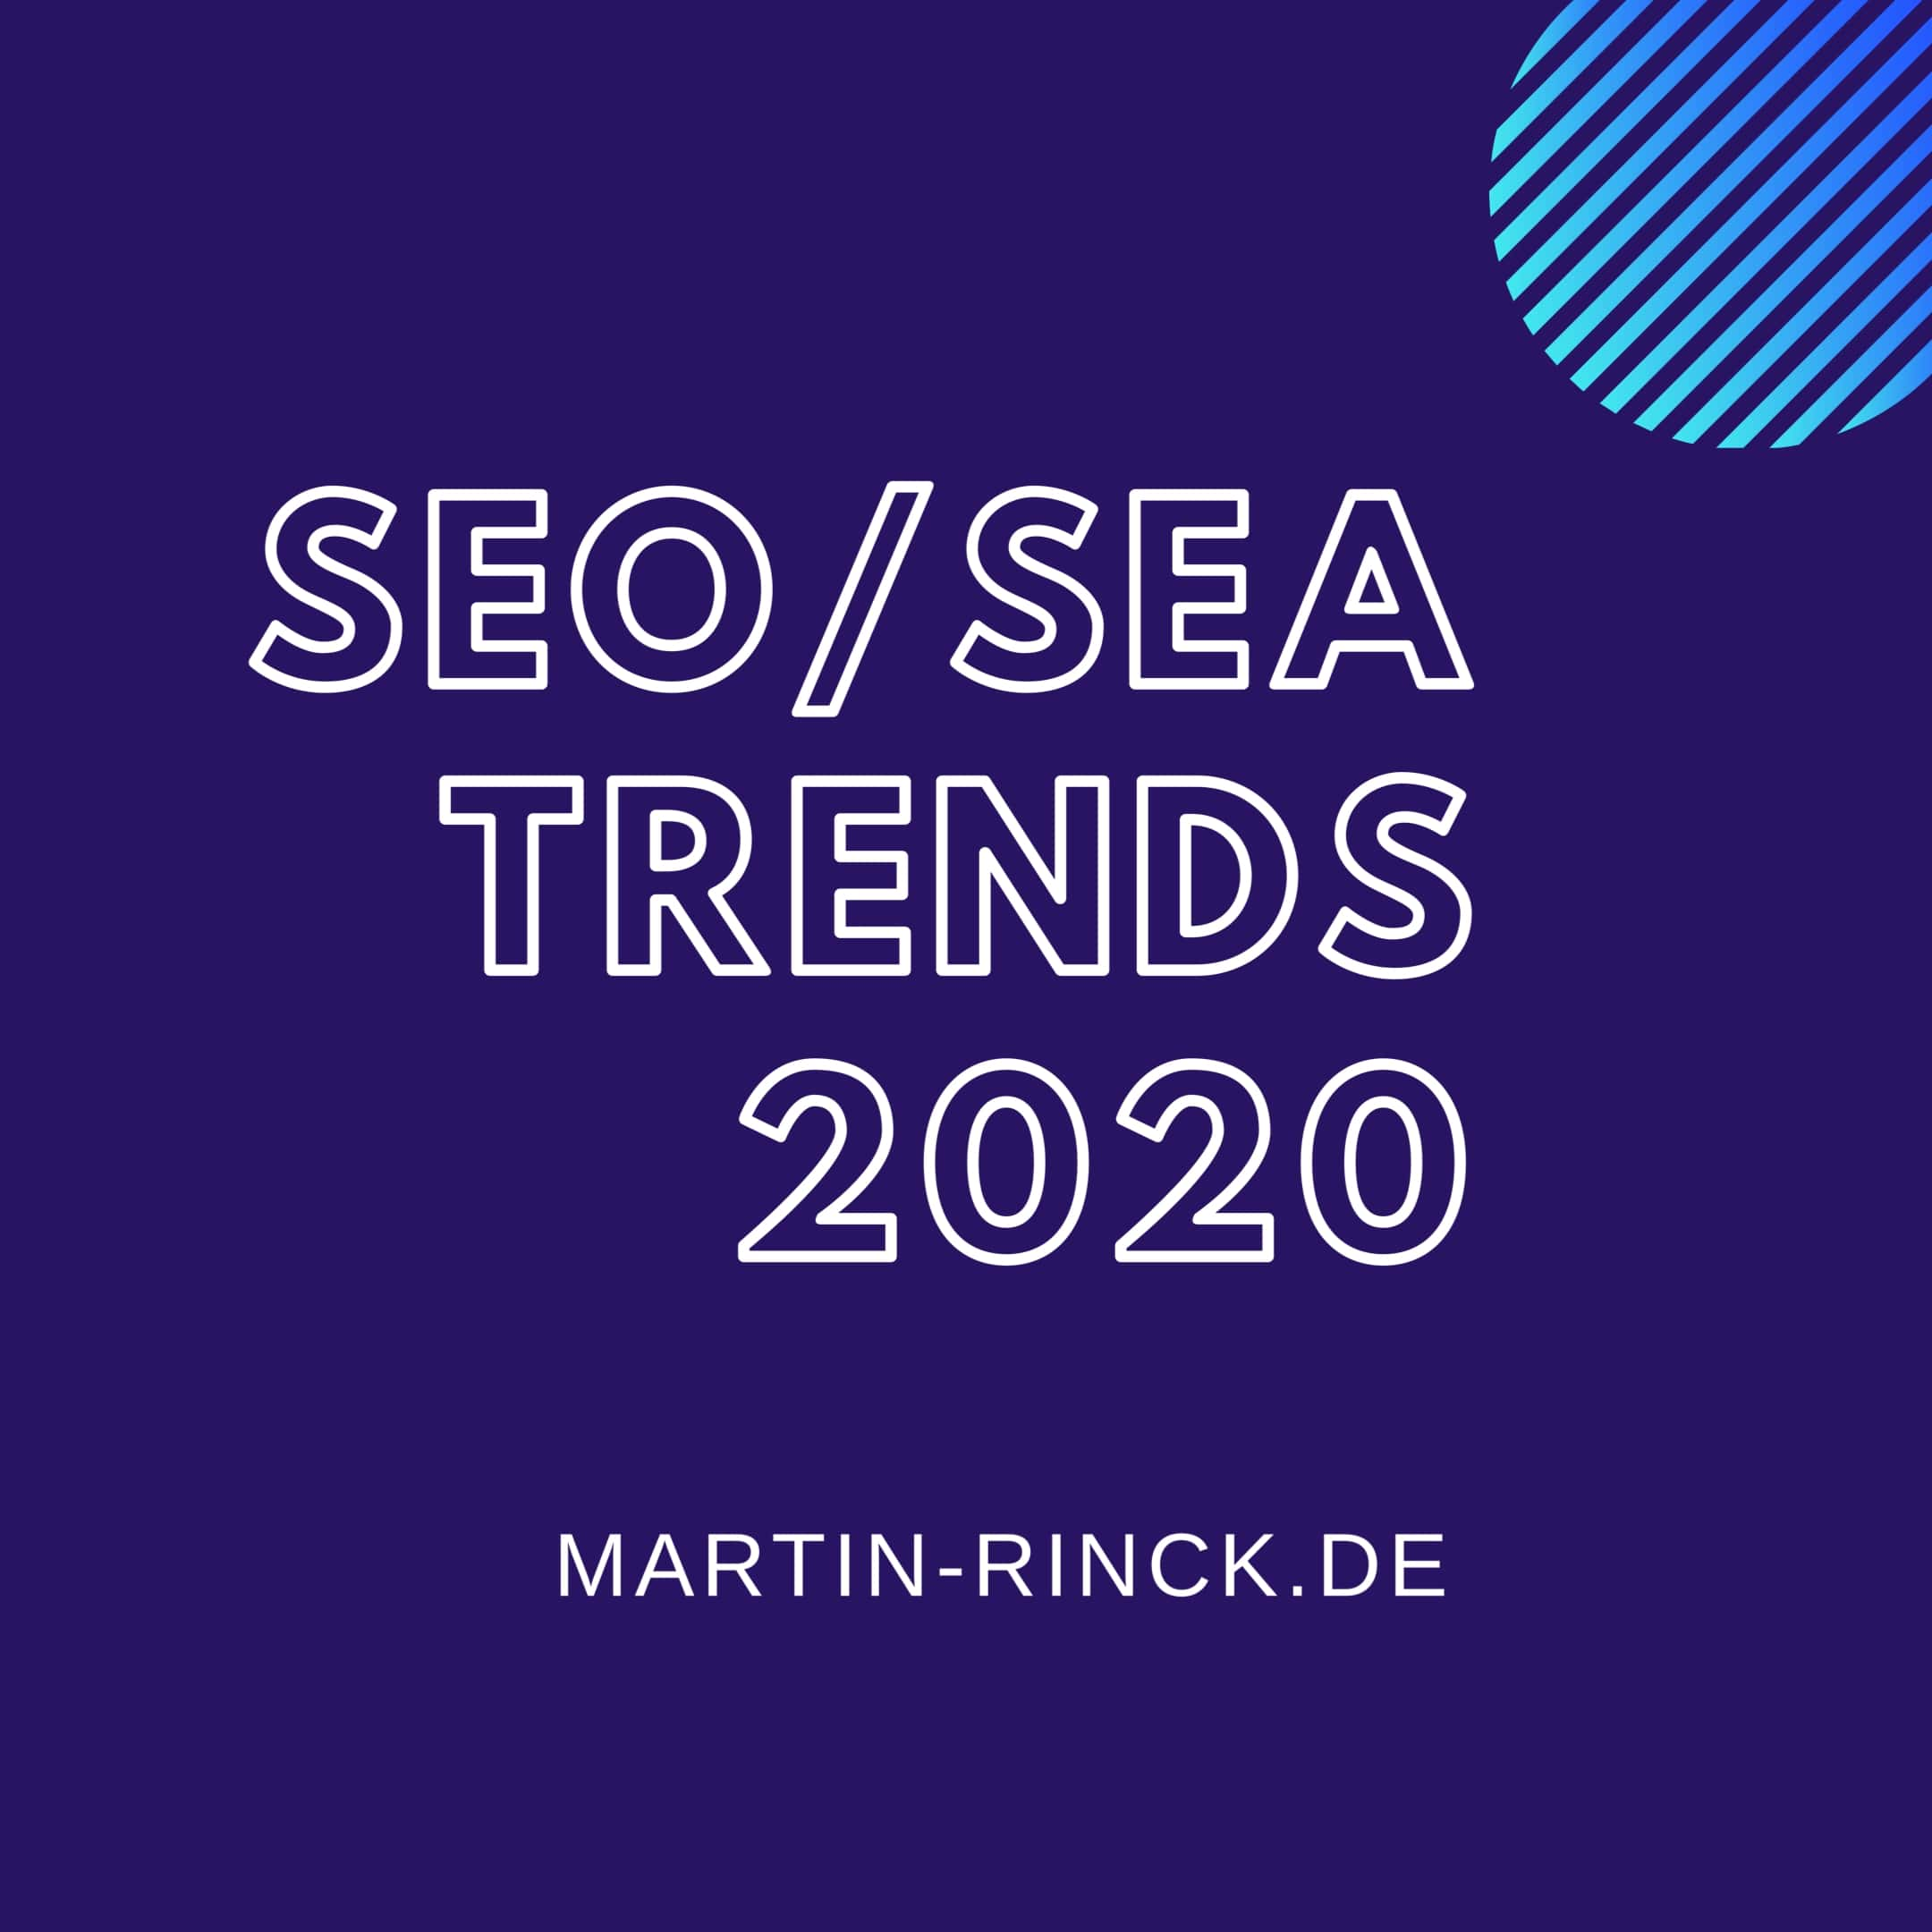 SEO/SEA-Trends 2020